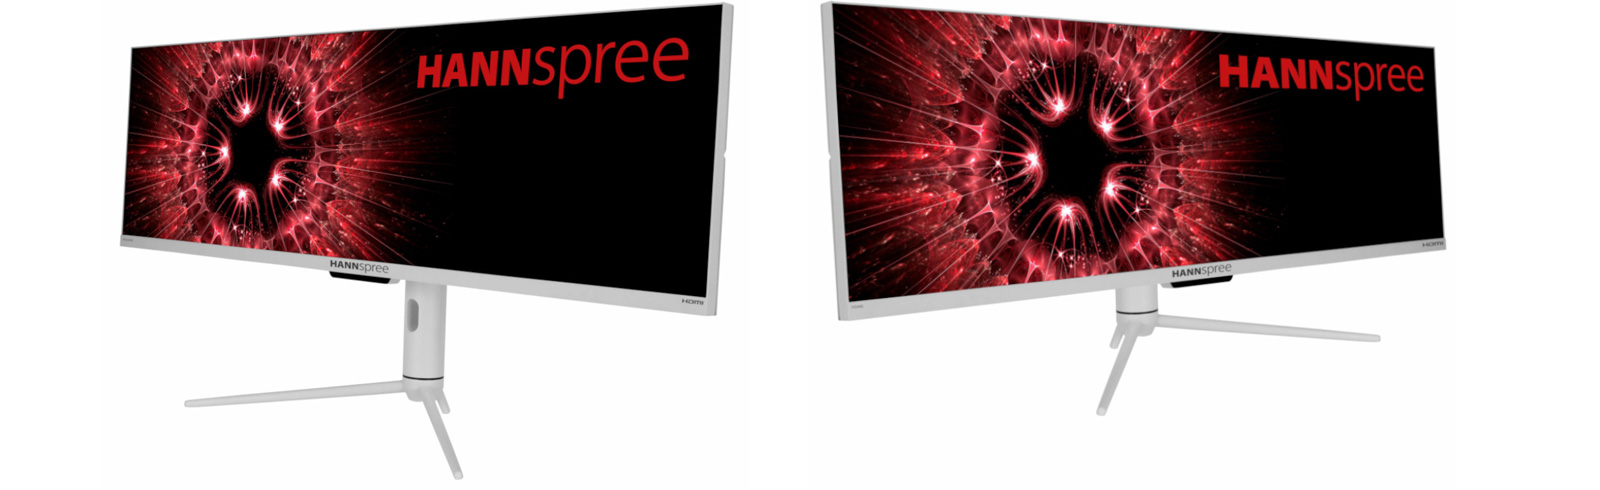 """The Hannspree HG440CFW is here with an UWFHD 43.8"""" display, 120Hz refresh rate"""